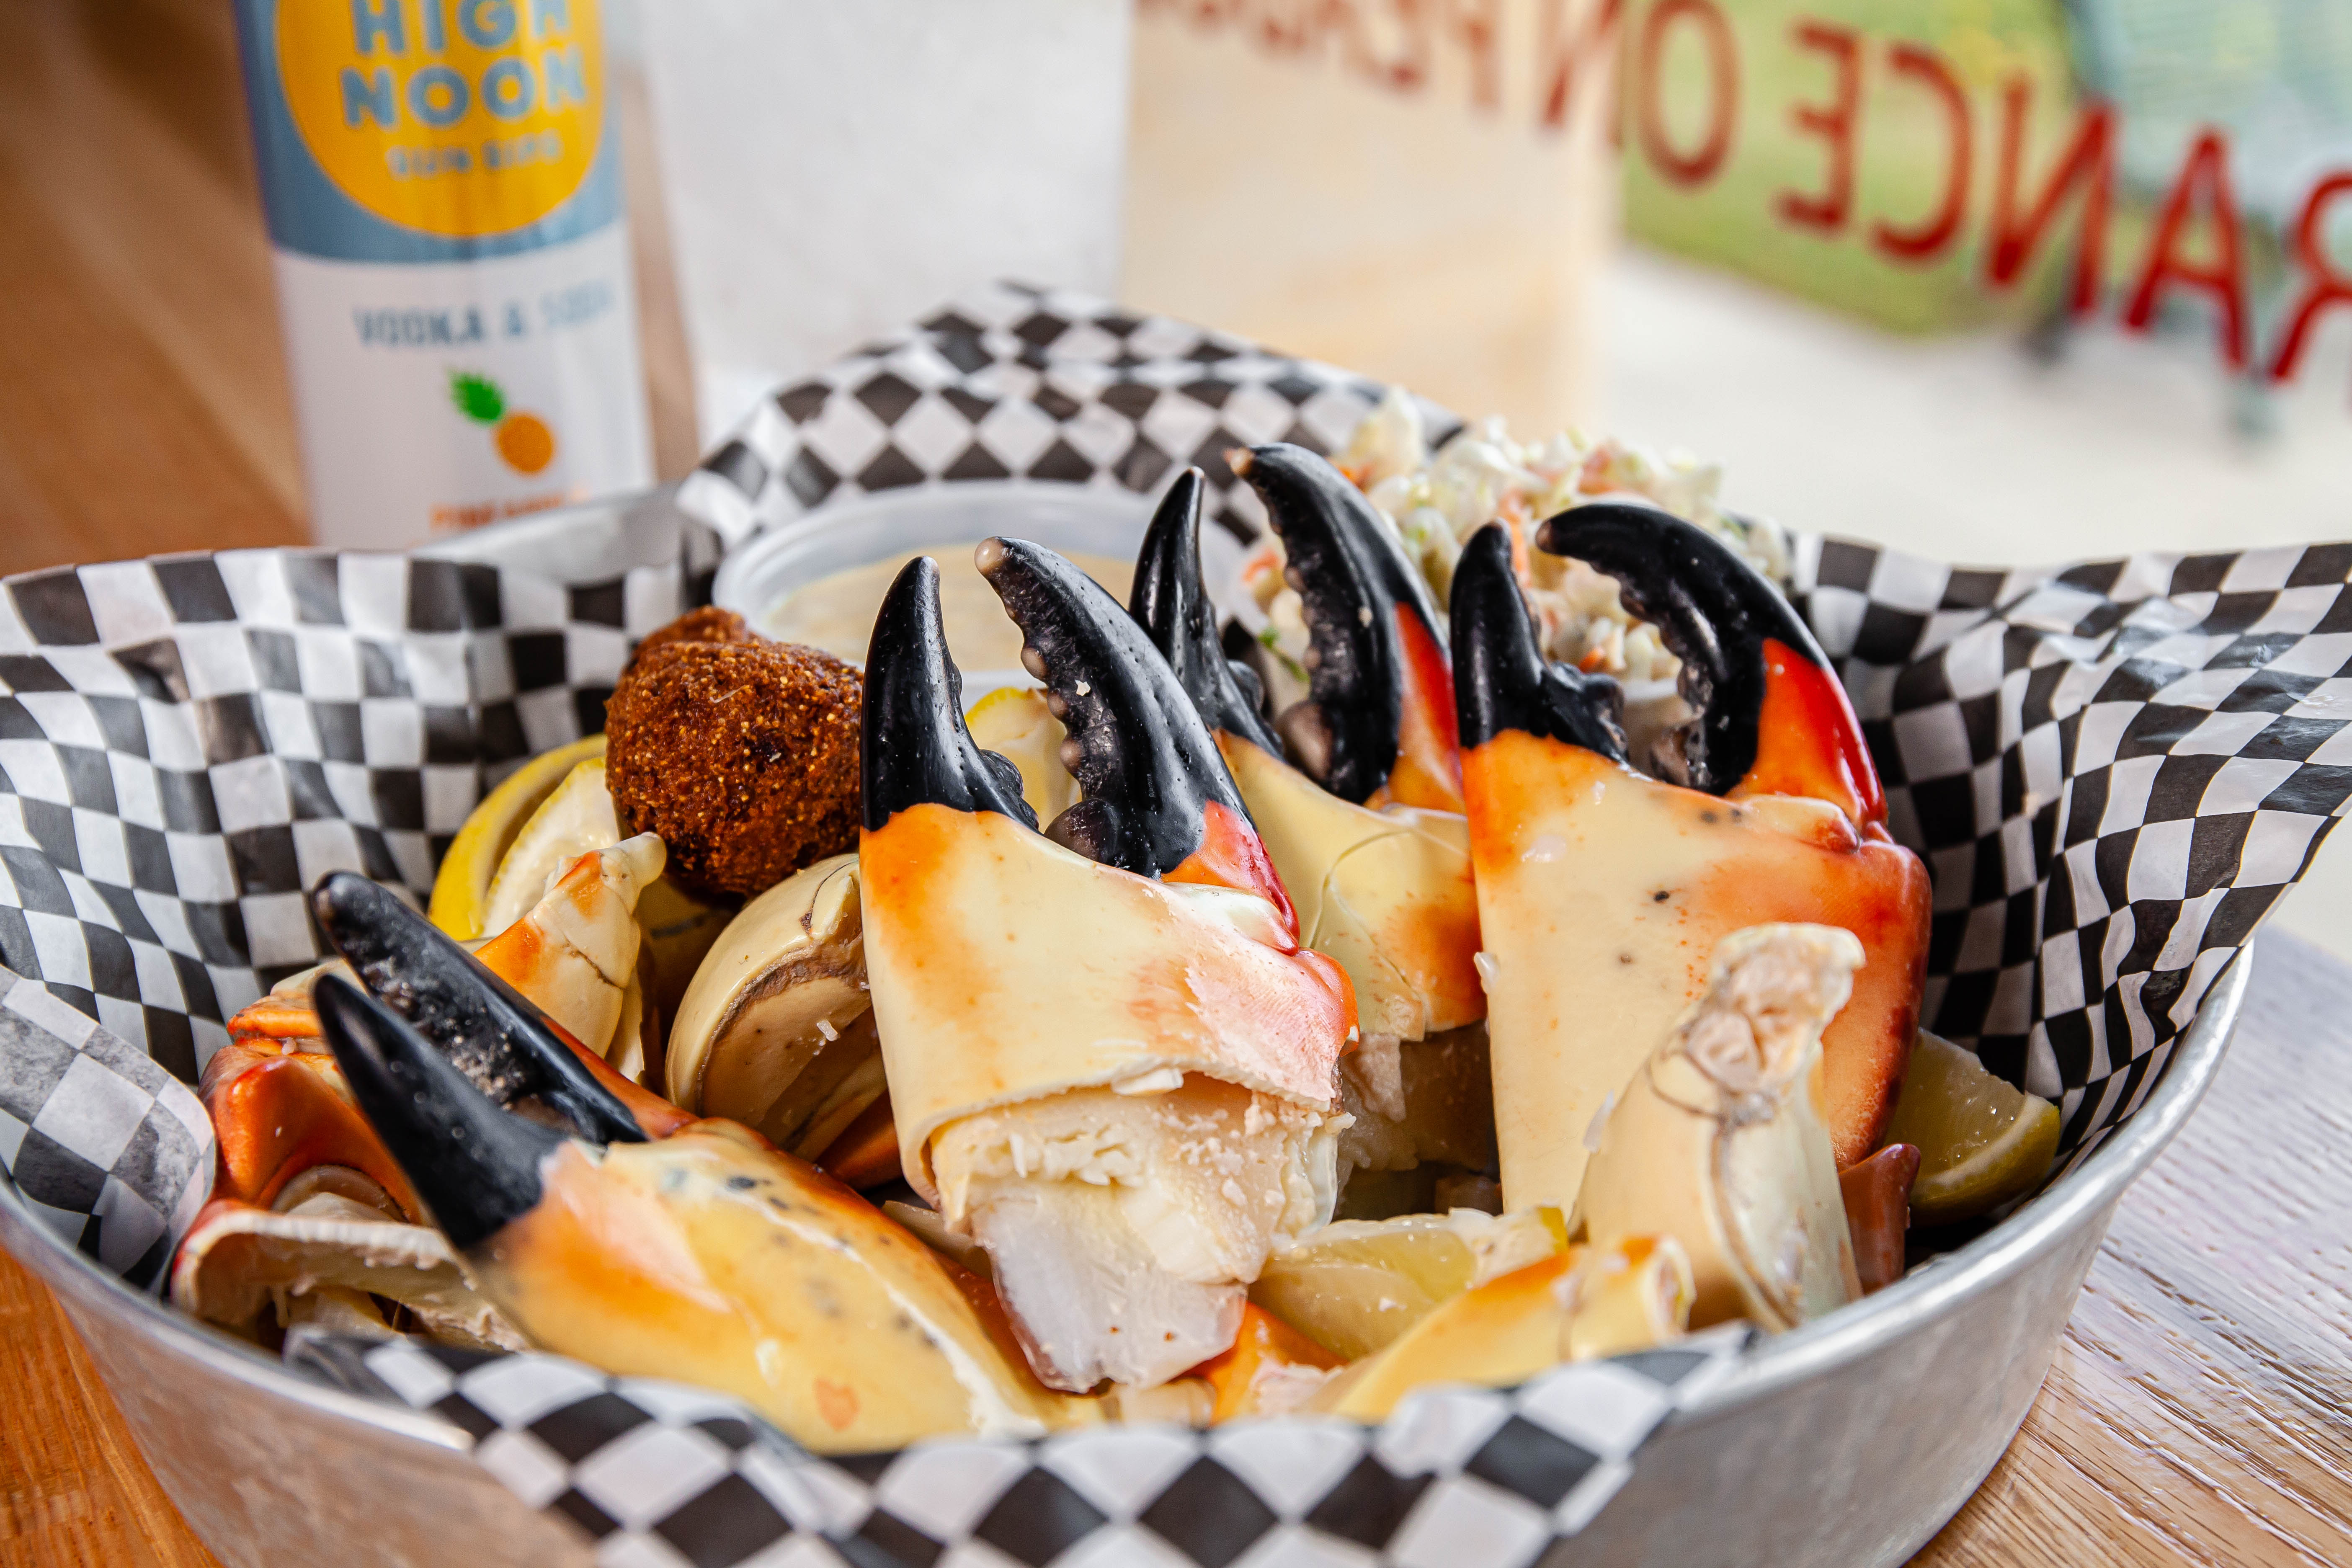 Stone crab claws with black tips arranged in a basket lined with black and white checked paper.